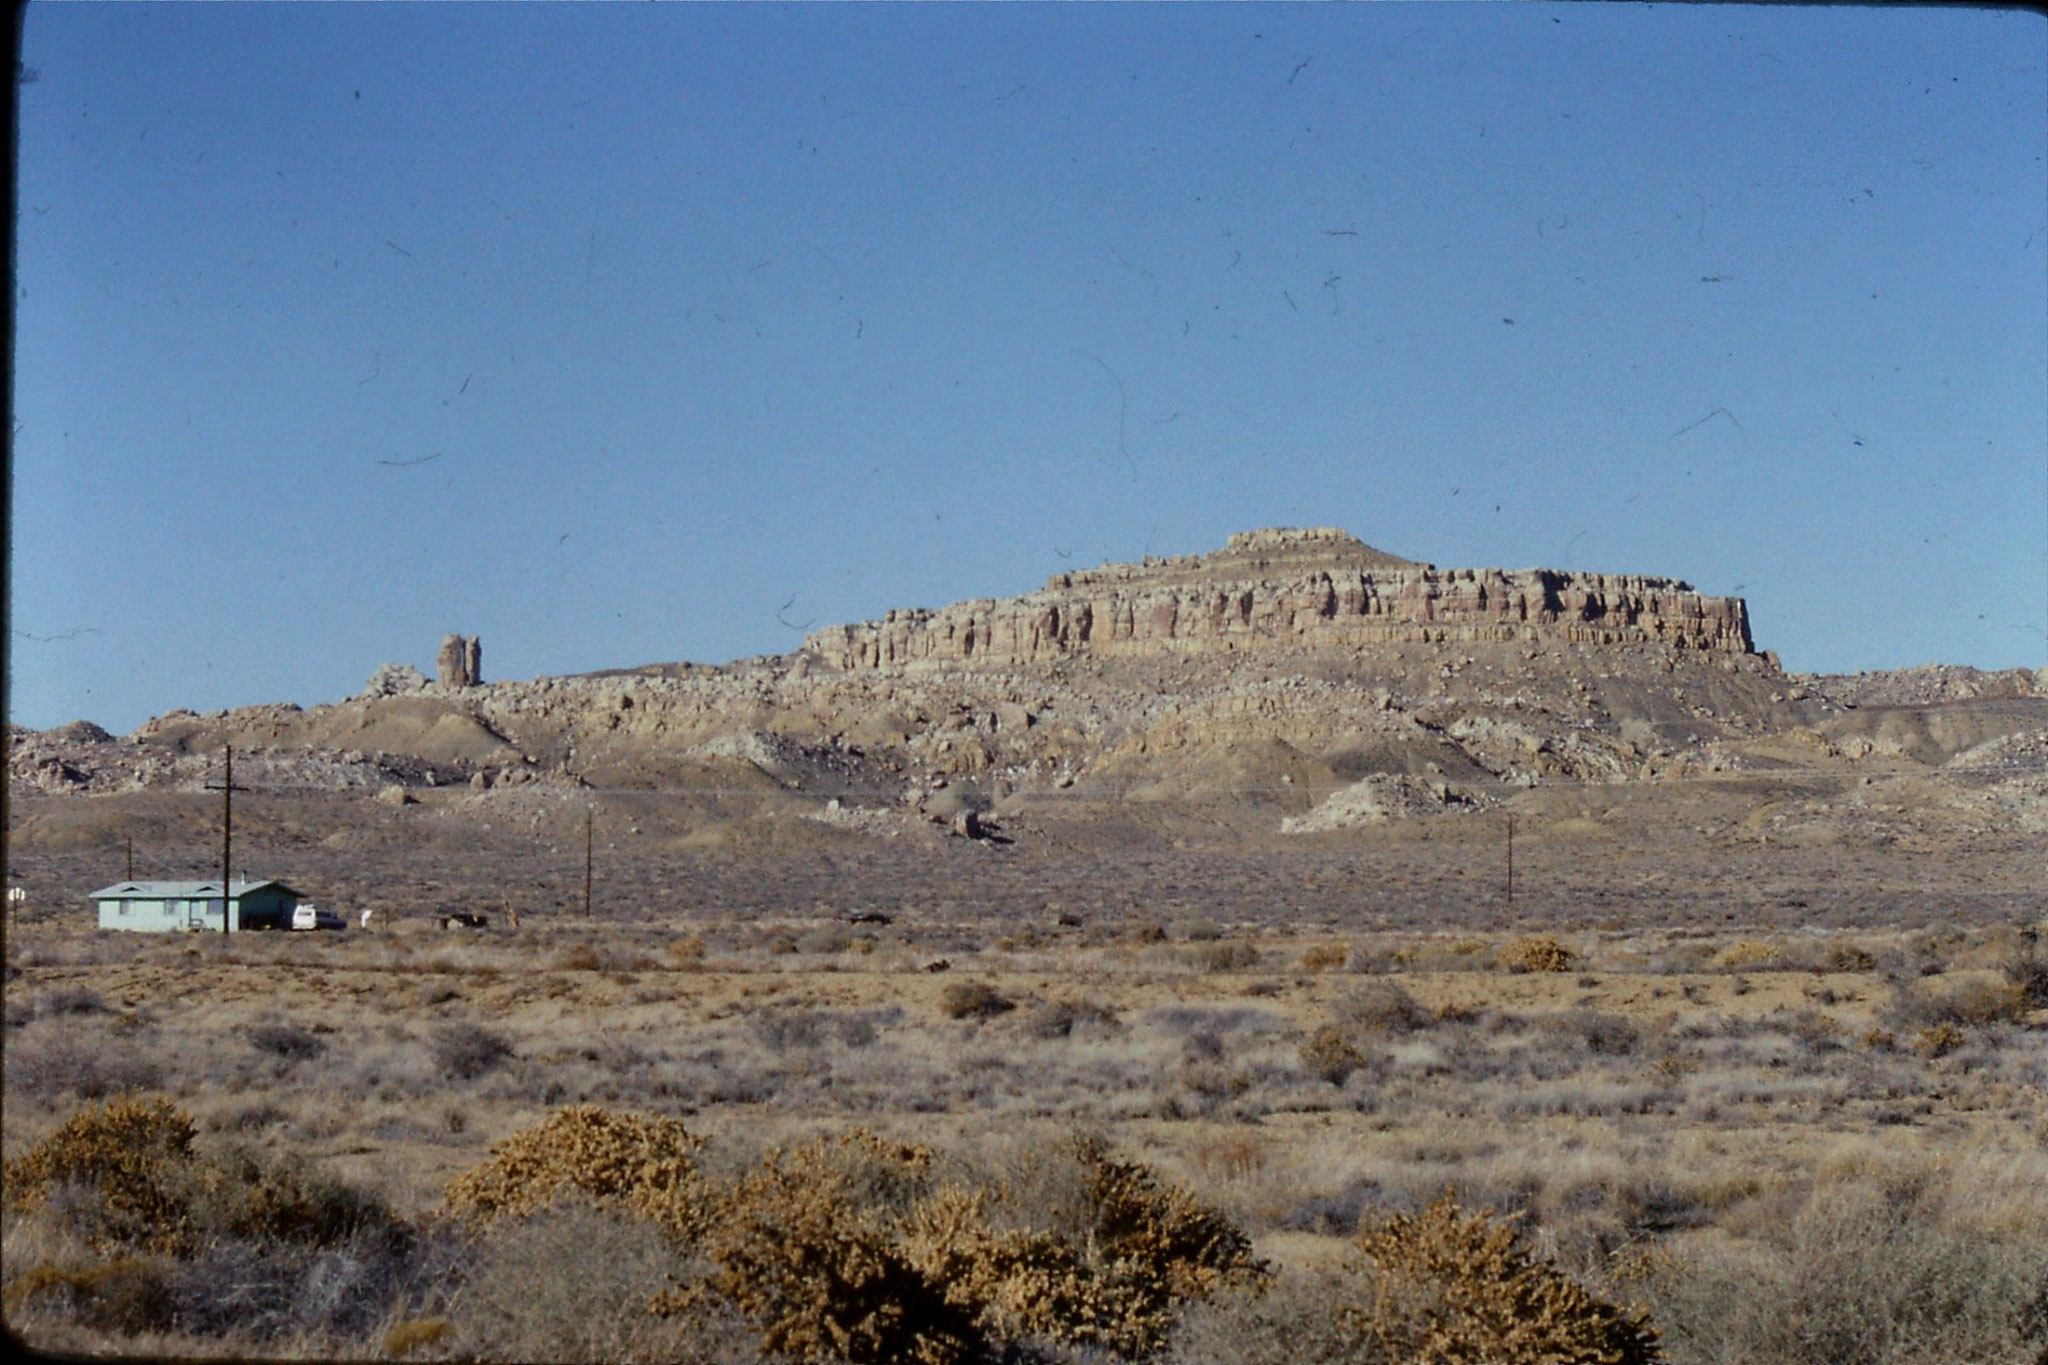 14/12/1990: 15: Second mesa with Corn Rock on left